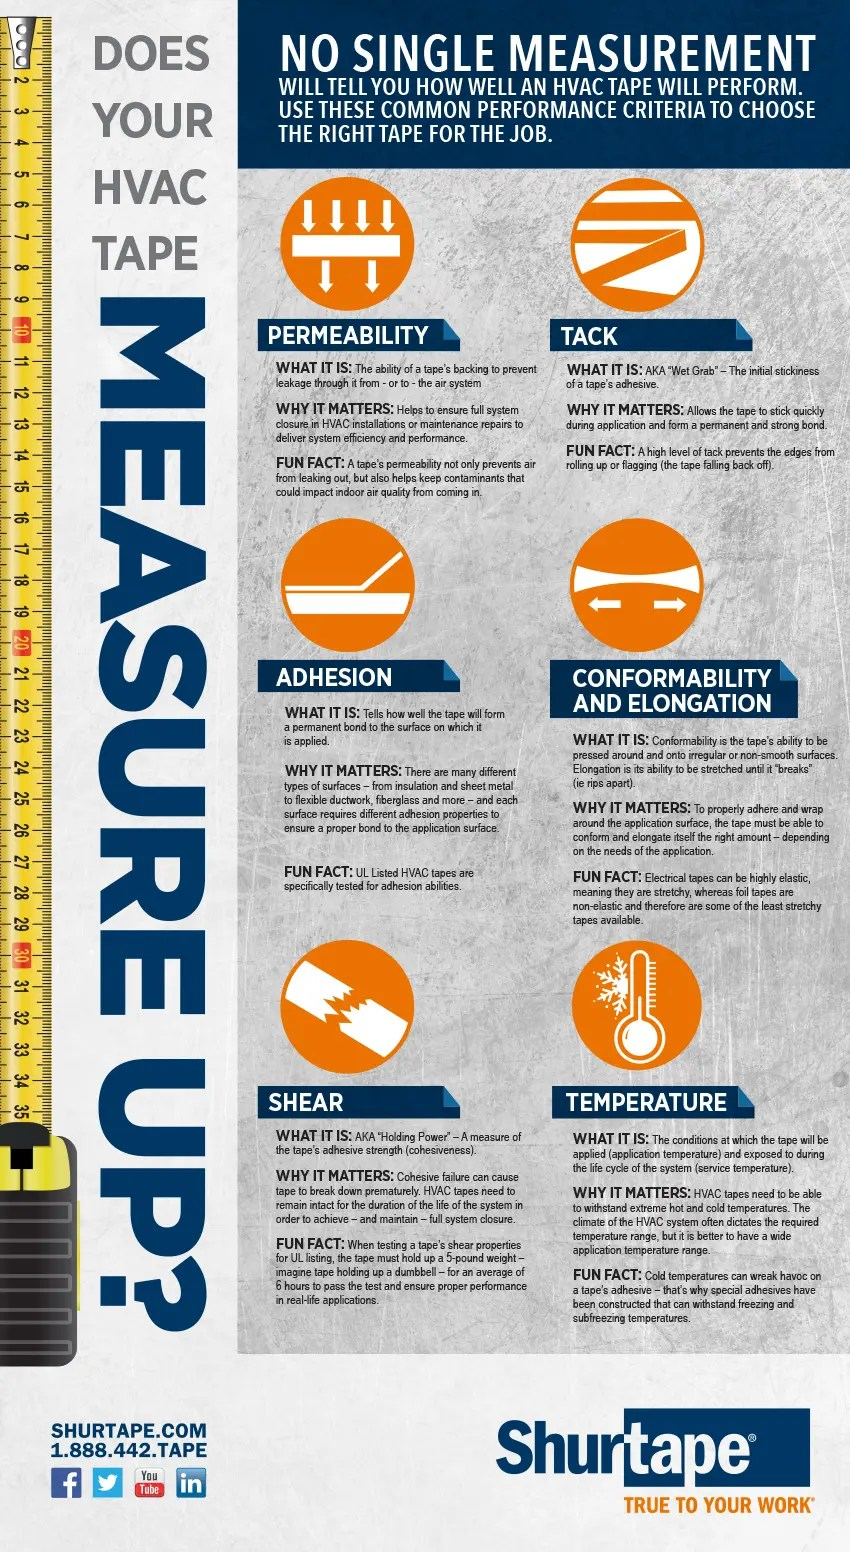 Does your HVAC tape measure up?